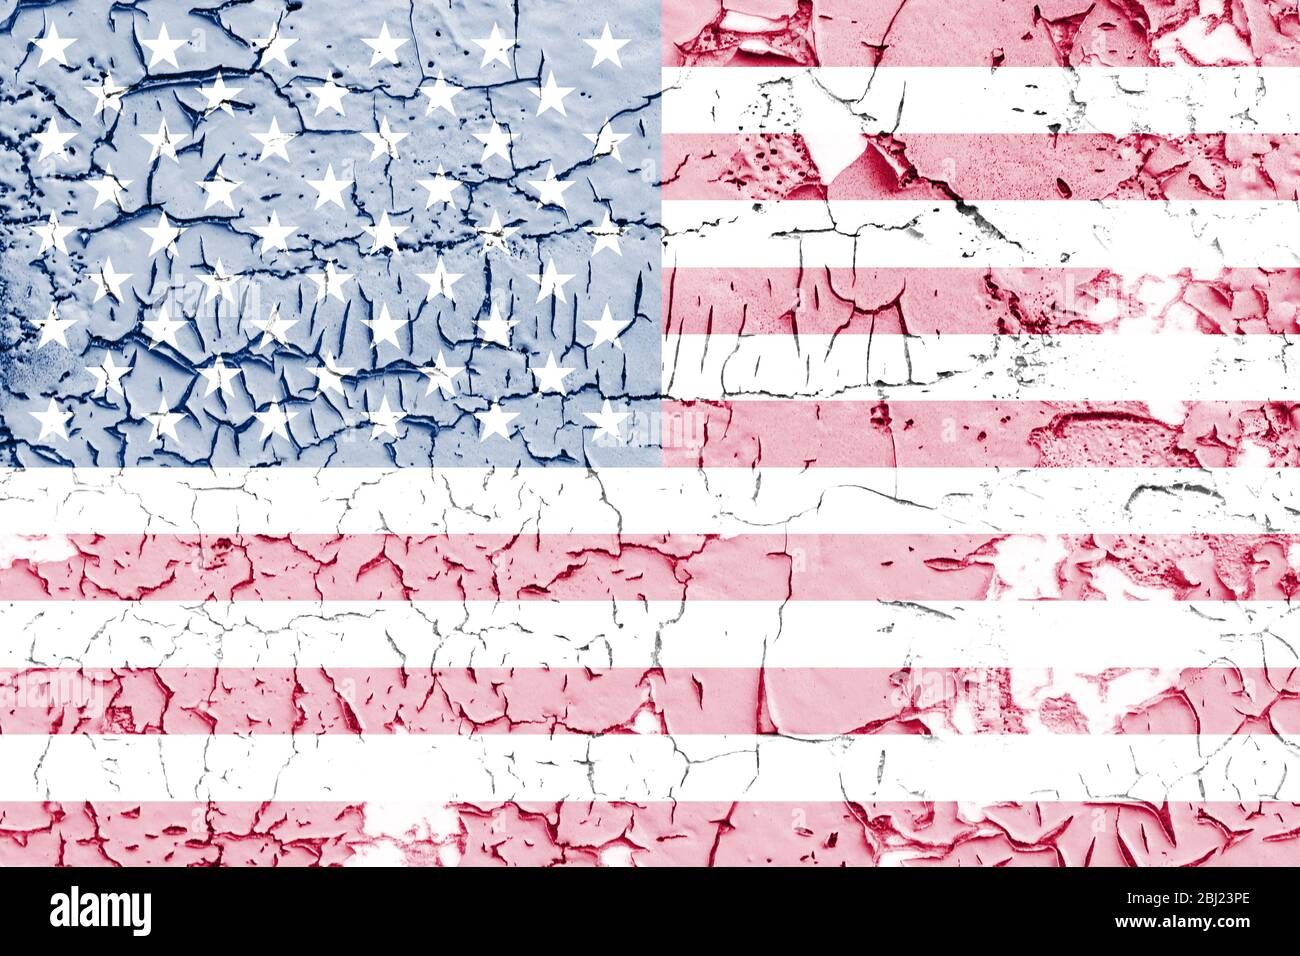 Graffiti Us Flag High Resolution Stock Photography And Images Alamy